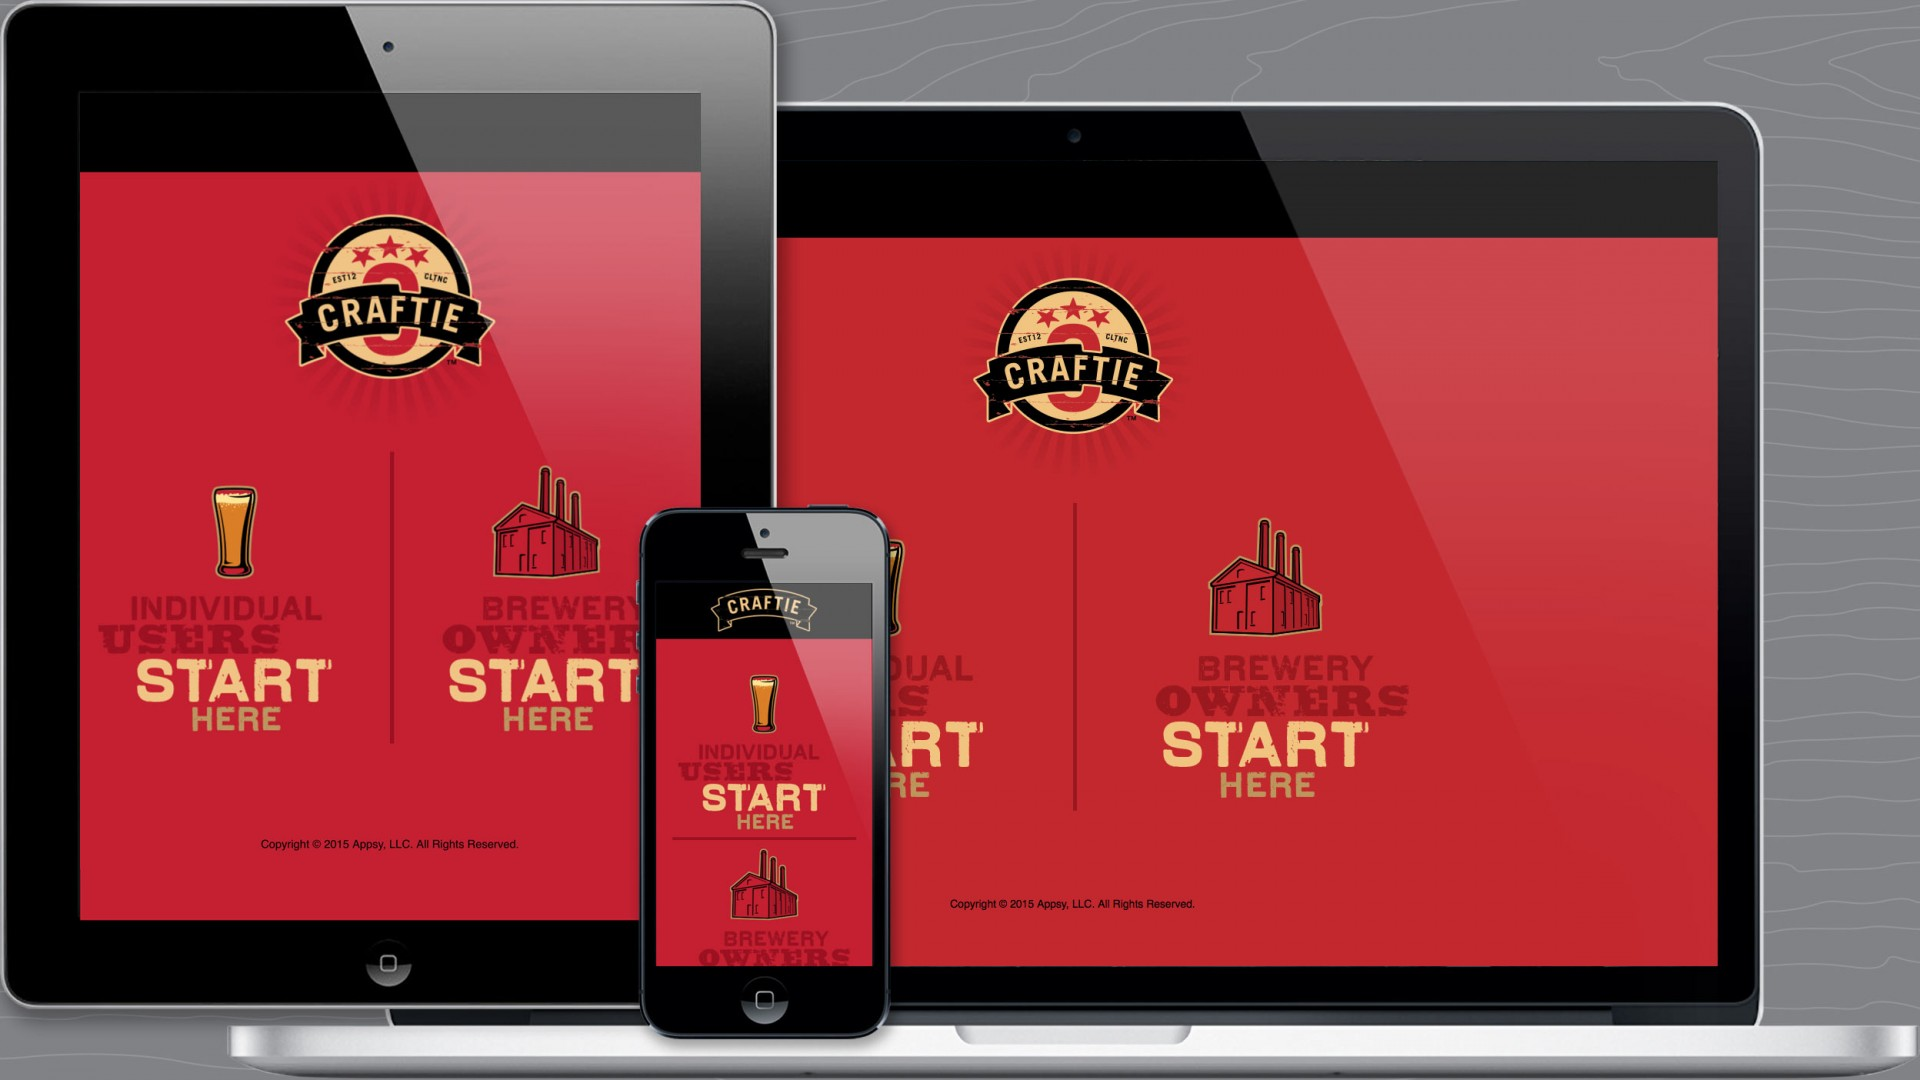 Load page of Craftie™ responsive marketing website.